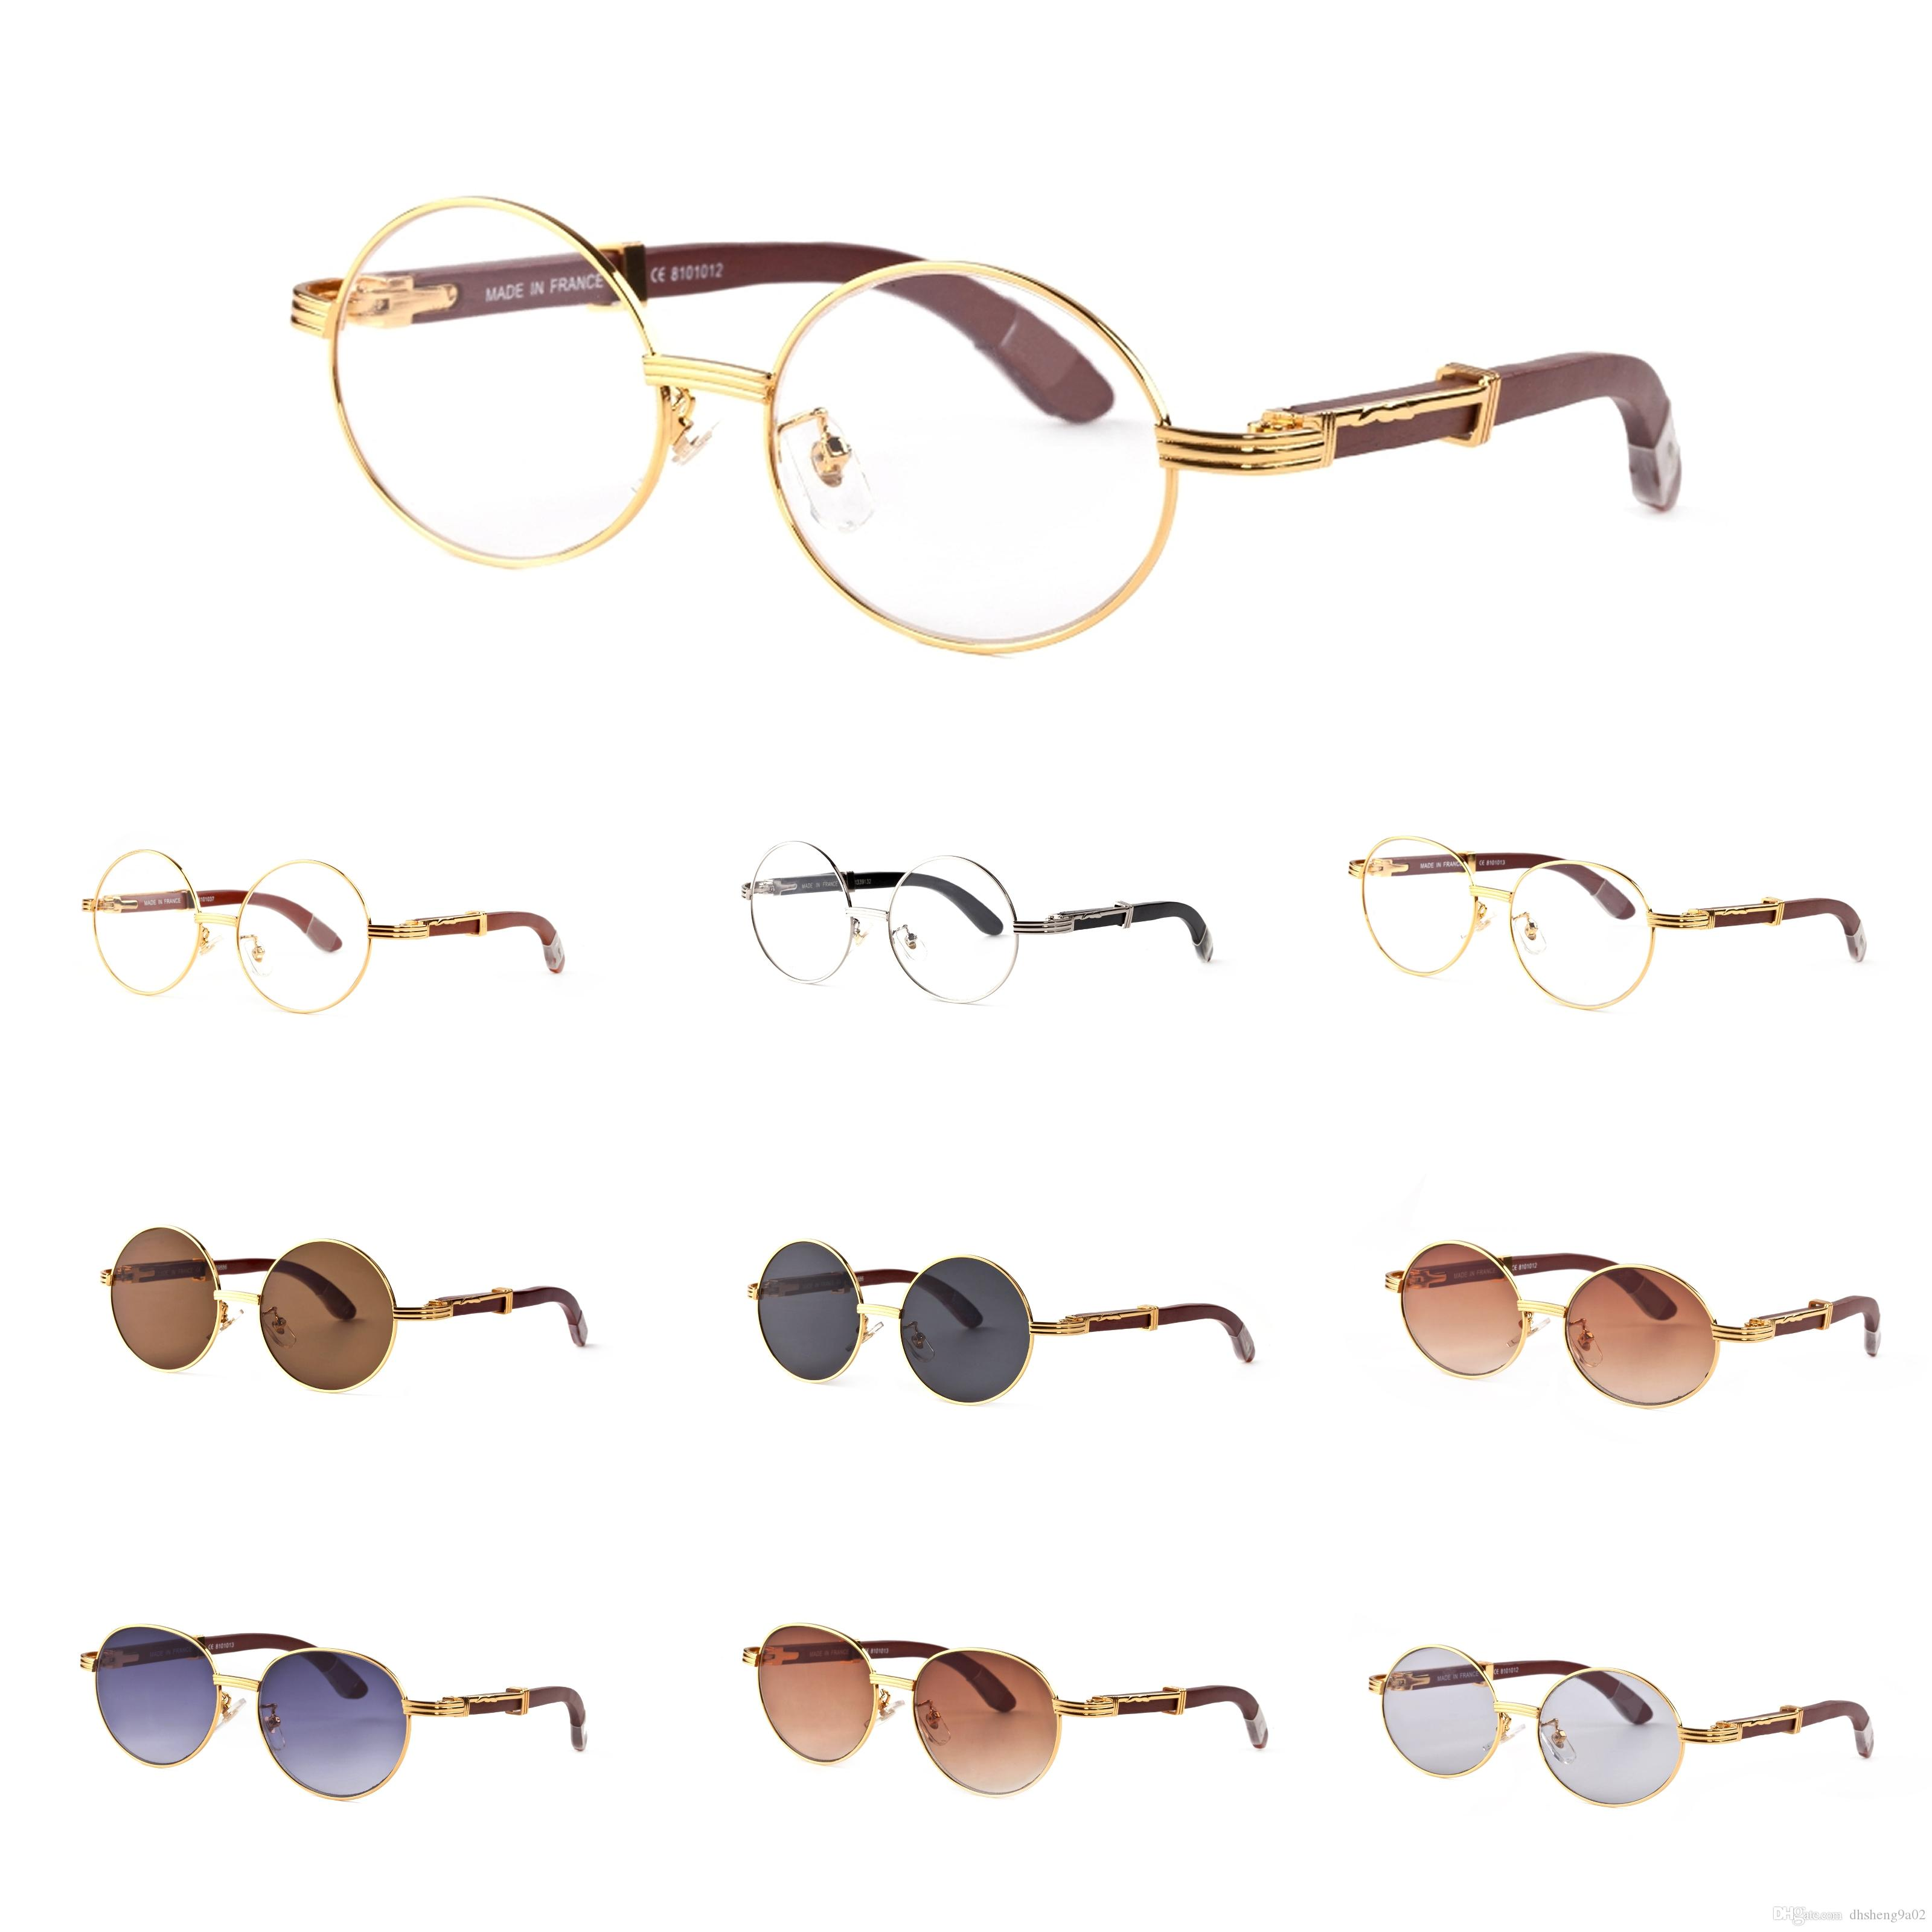 97ea6ee4c16 Luxury Brand Gold Sun Glasses Metal Frames Real Wooden Designer Sunglasses  Brands For Men And Women Vintage Round Wood Glasses With Box Cool Sunglasses  ...